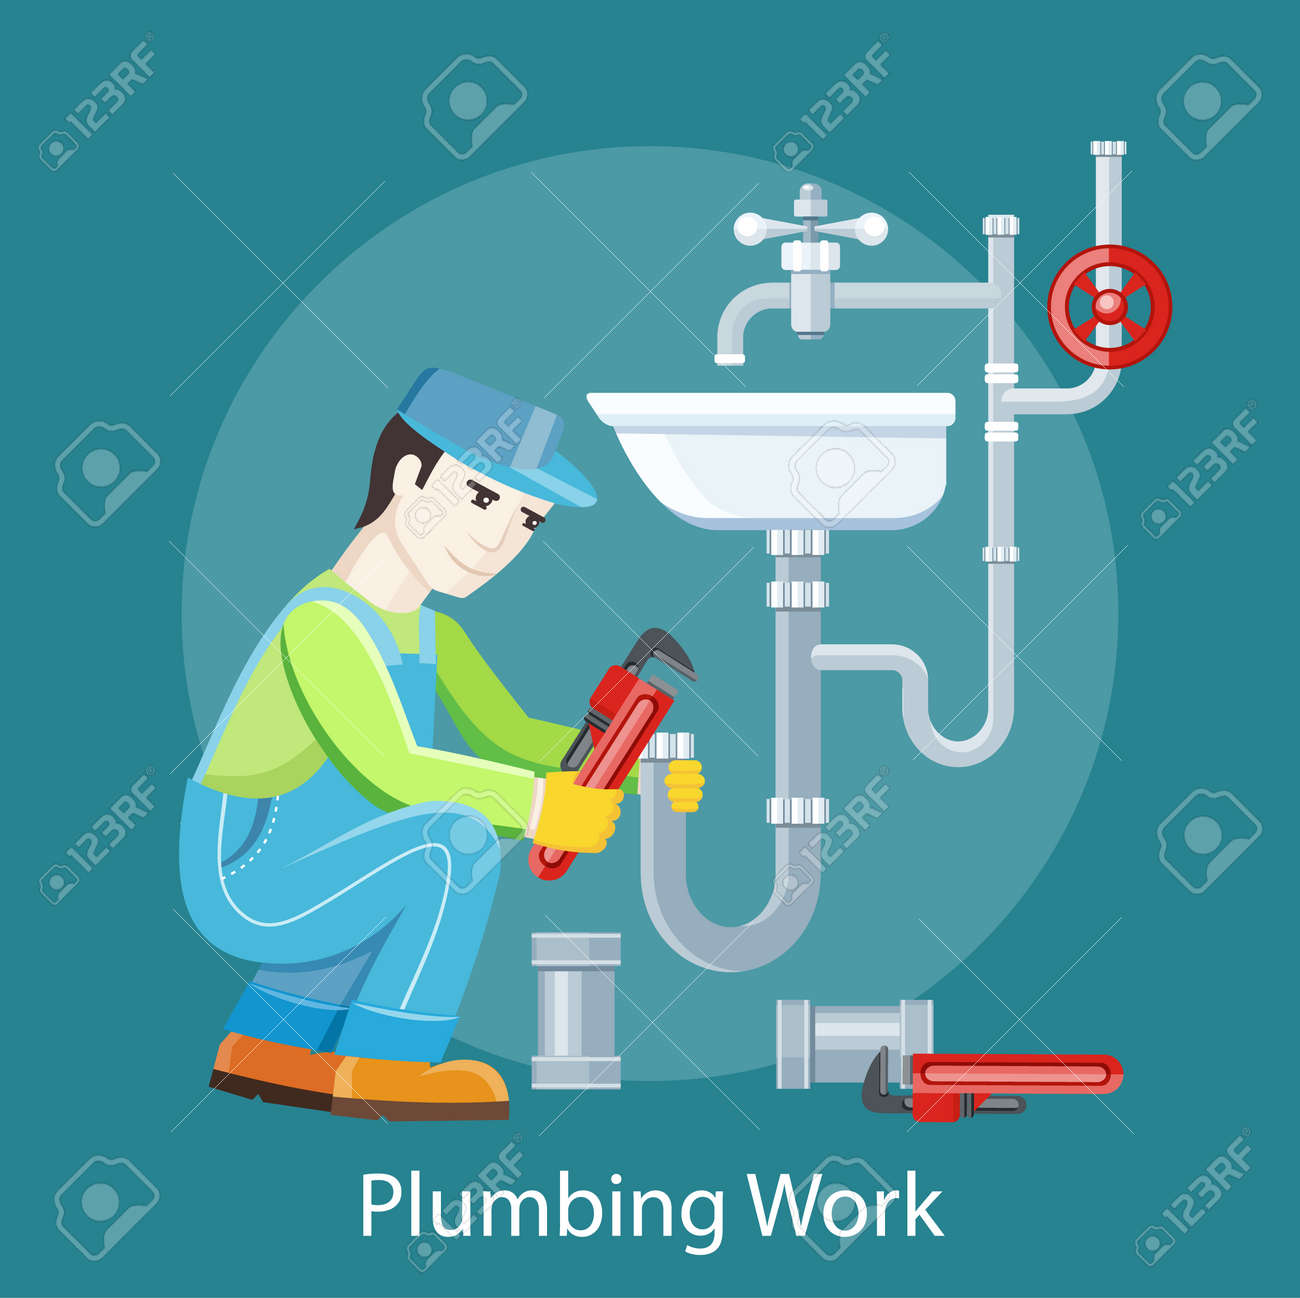 Plumbing Work Sanitary Works Plumber And Wrench Engineer Character Plumber Repairing A